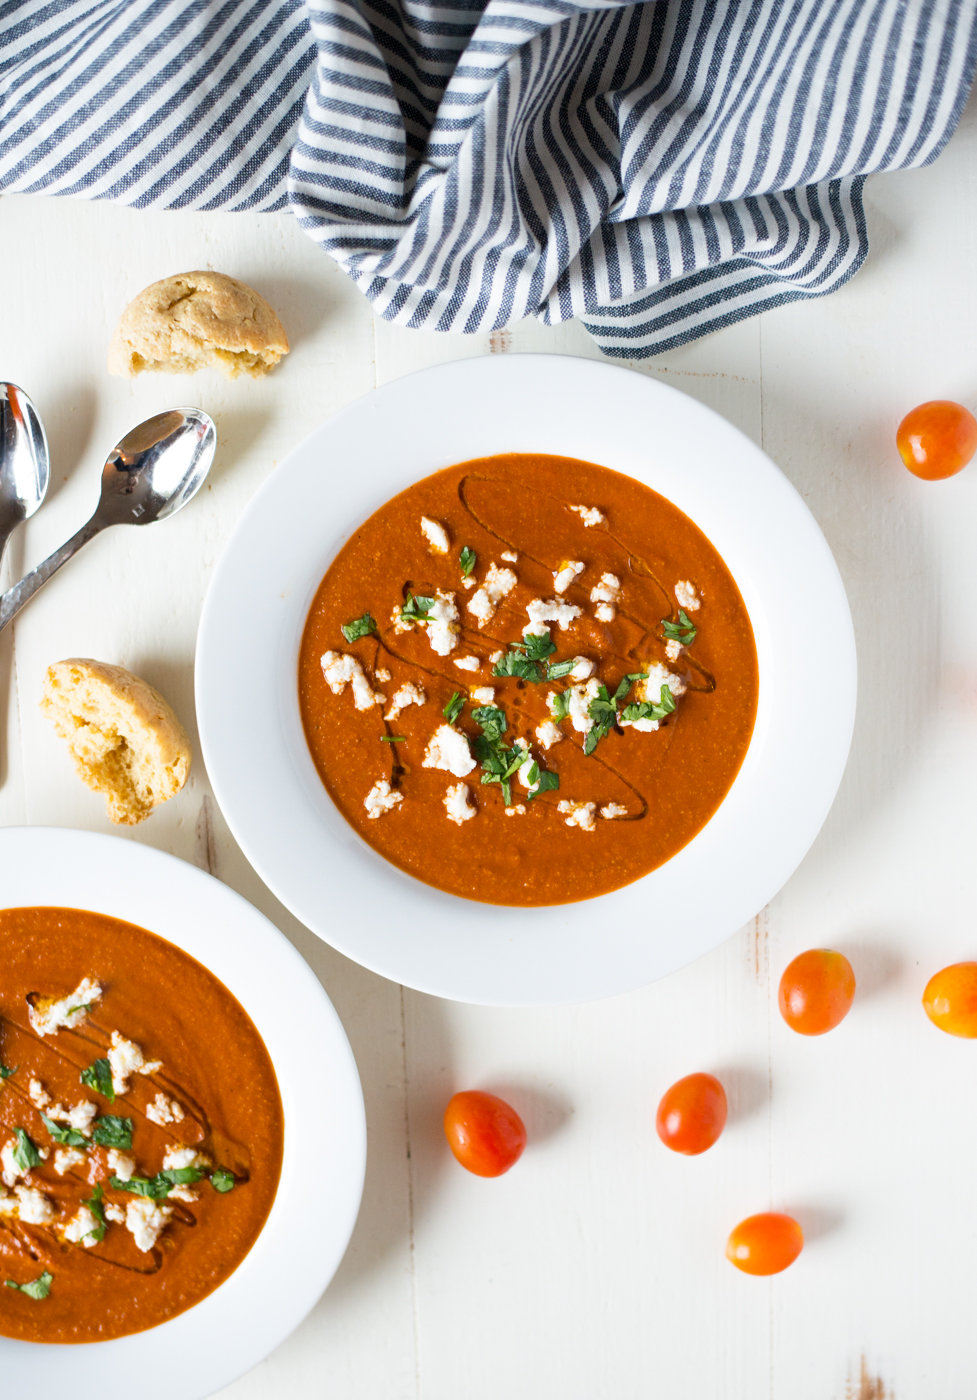 Creamy, dreamy, and totally dairy-free, Instant Pot Creamy Tomato Soup comes together in a matter of minutes thanks to the magic of the pressure cooking. Say hello to your new favorite soup!